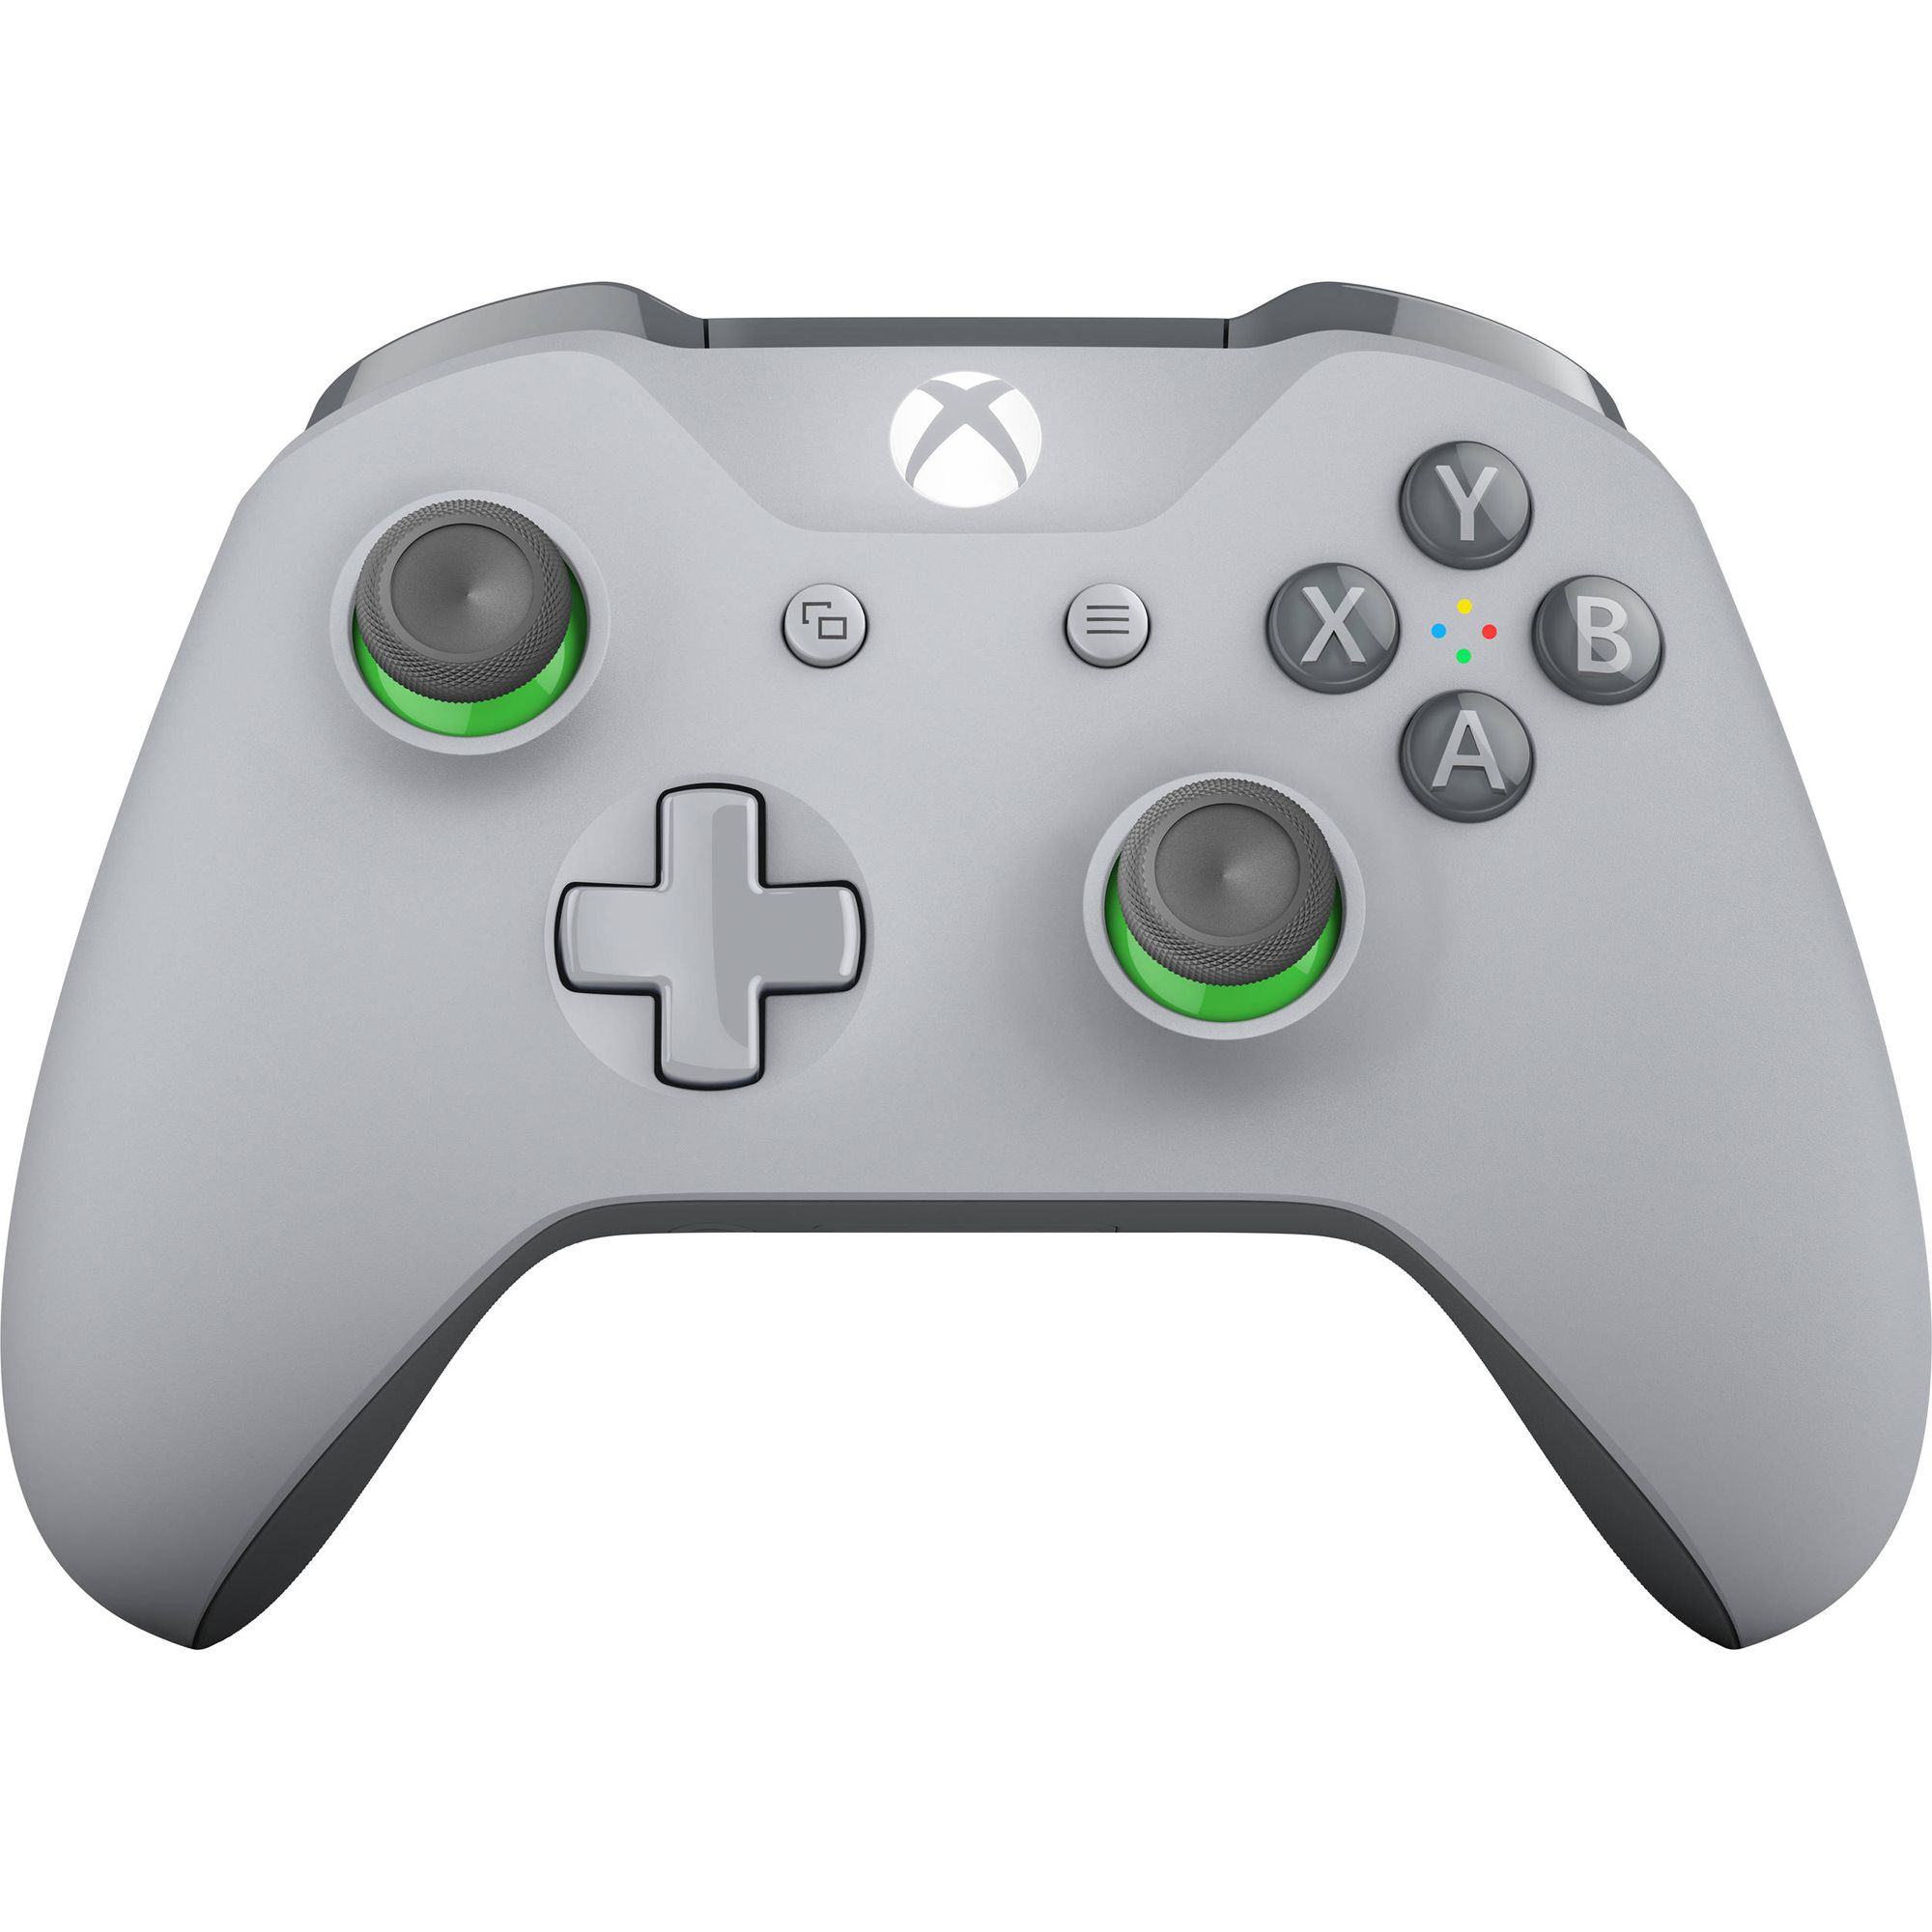 Video Games In 2020 Xbox Wireless Controller Xbox One Controller Wireless Controller